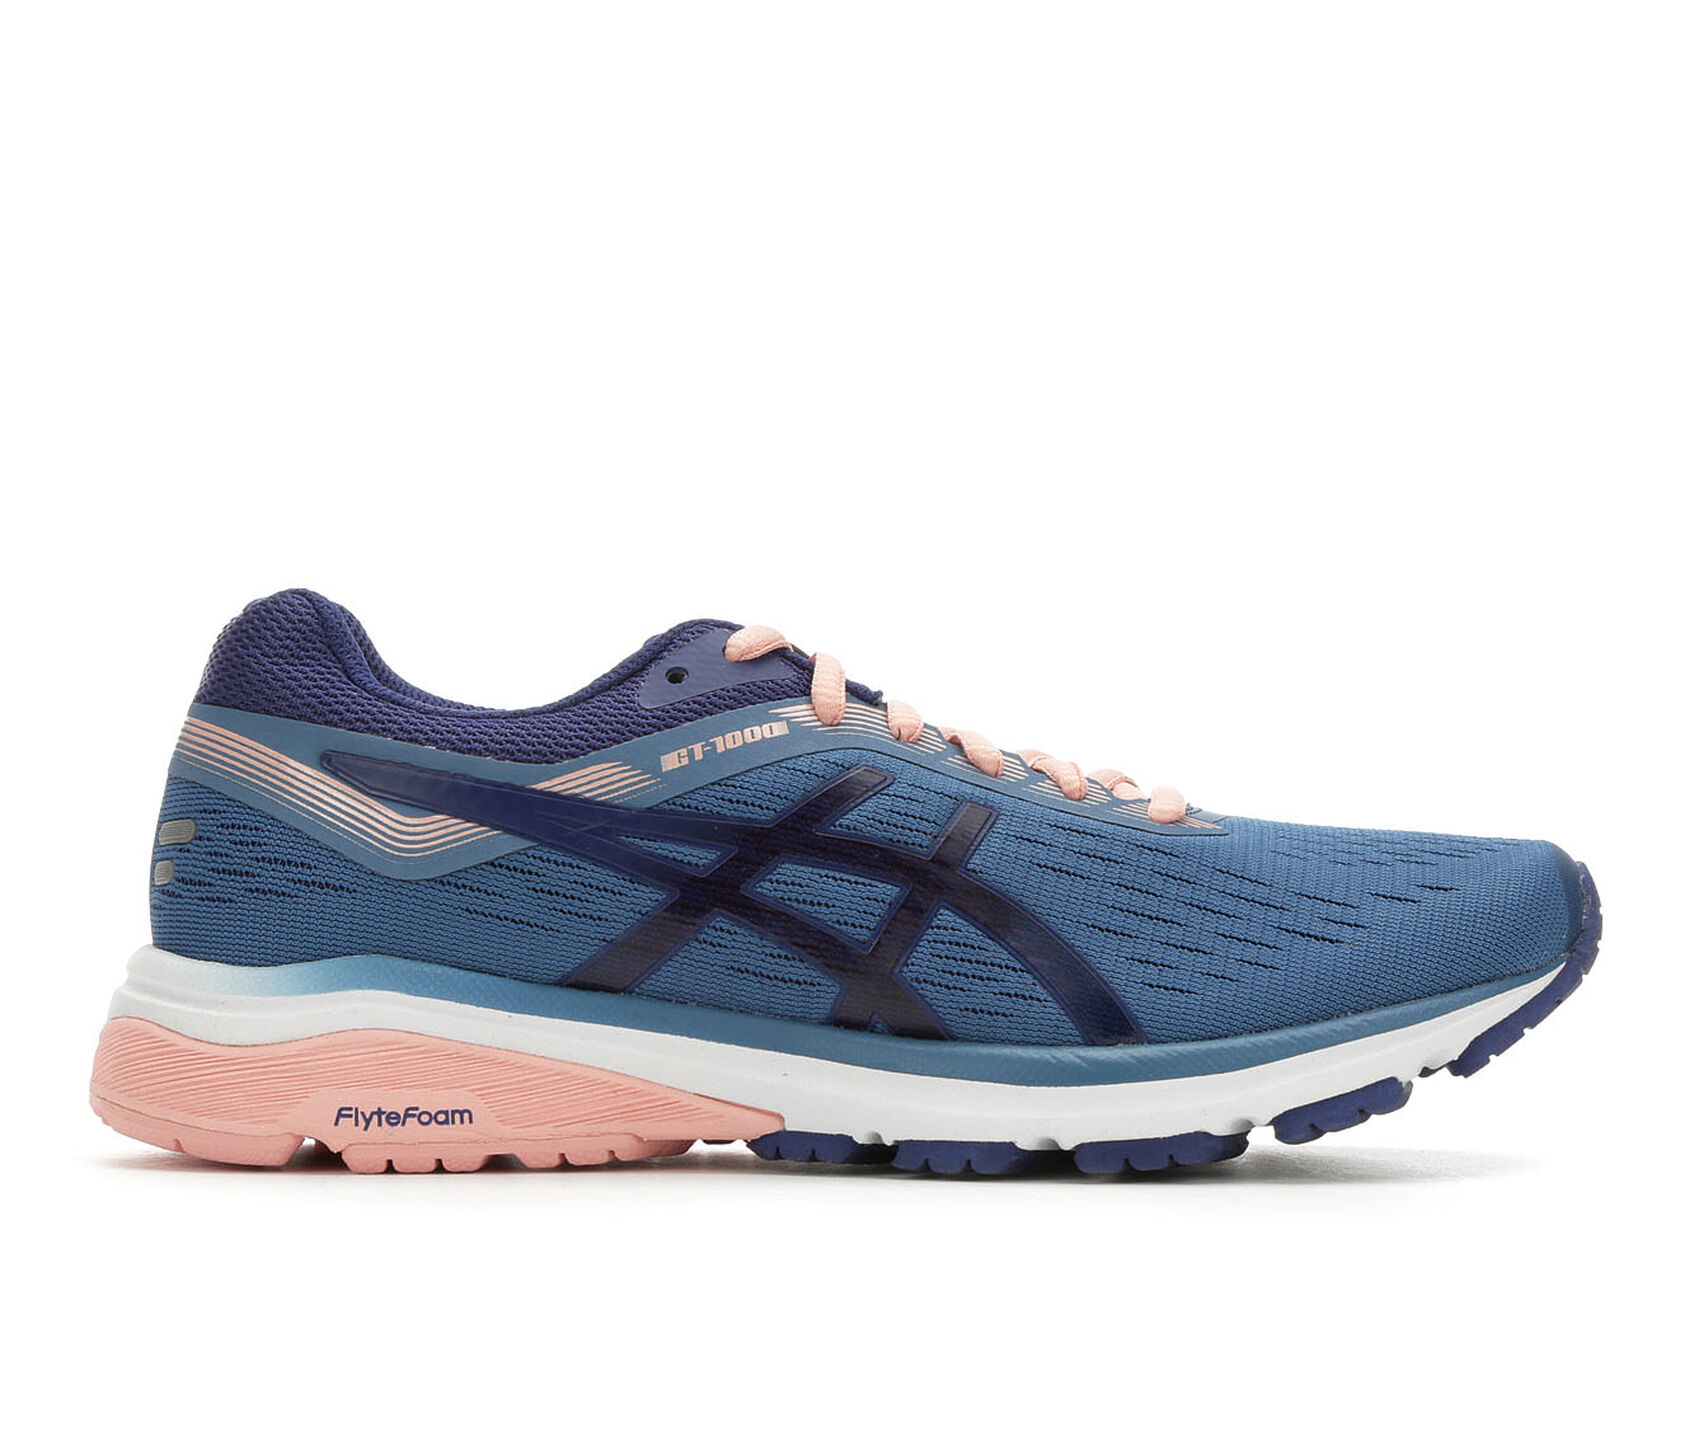 fa4b7ec59464f ... ASICS GT 1000 7 Running Shoes. Previous